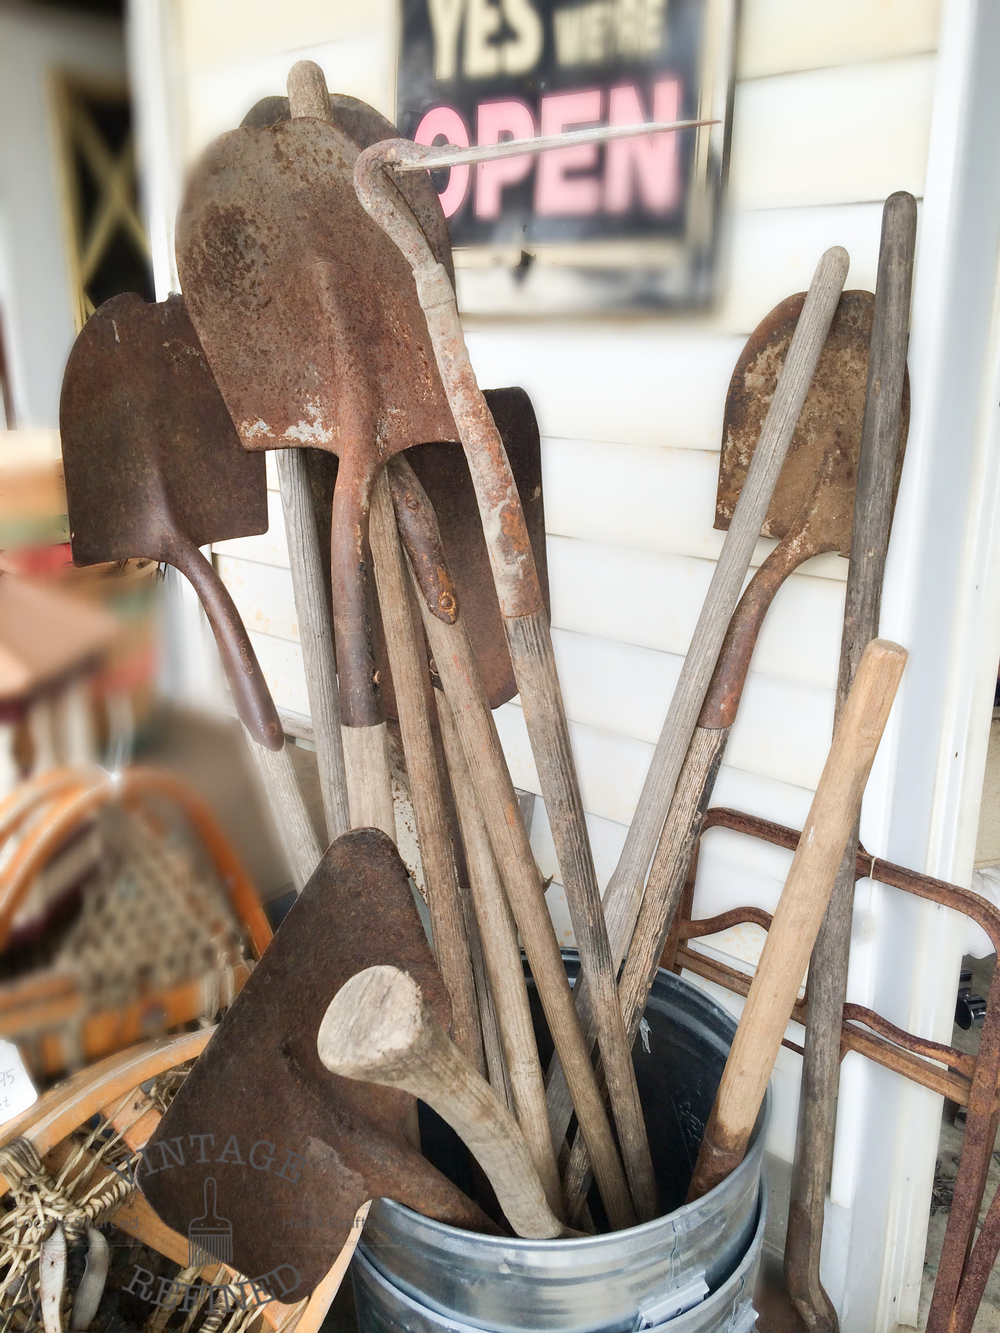 We found our fair share of vintage tools